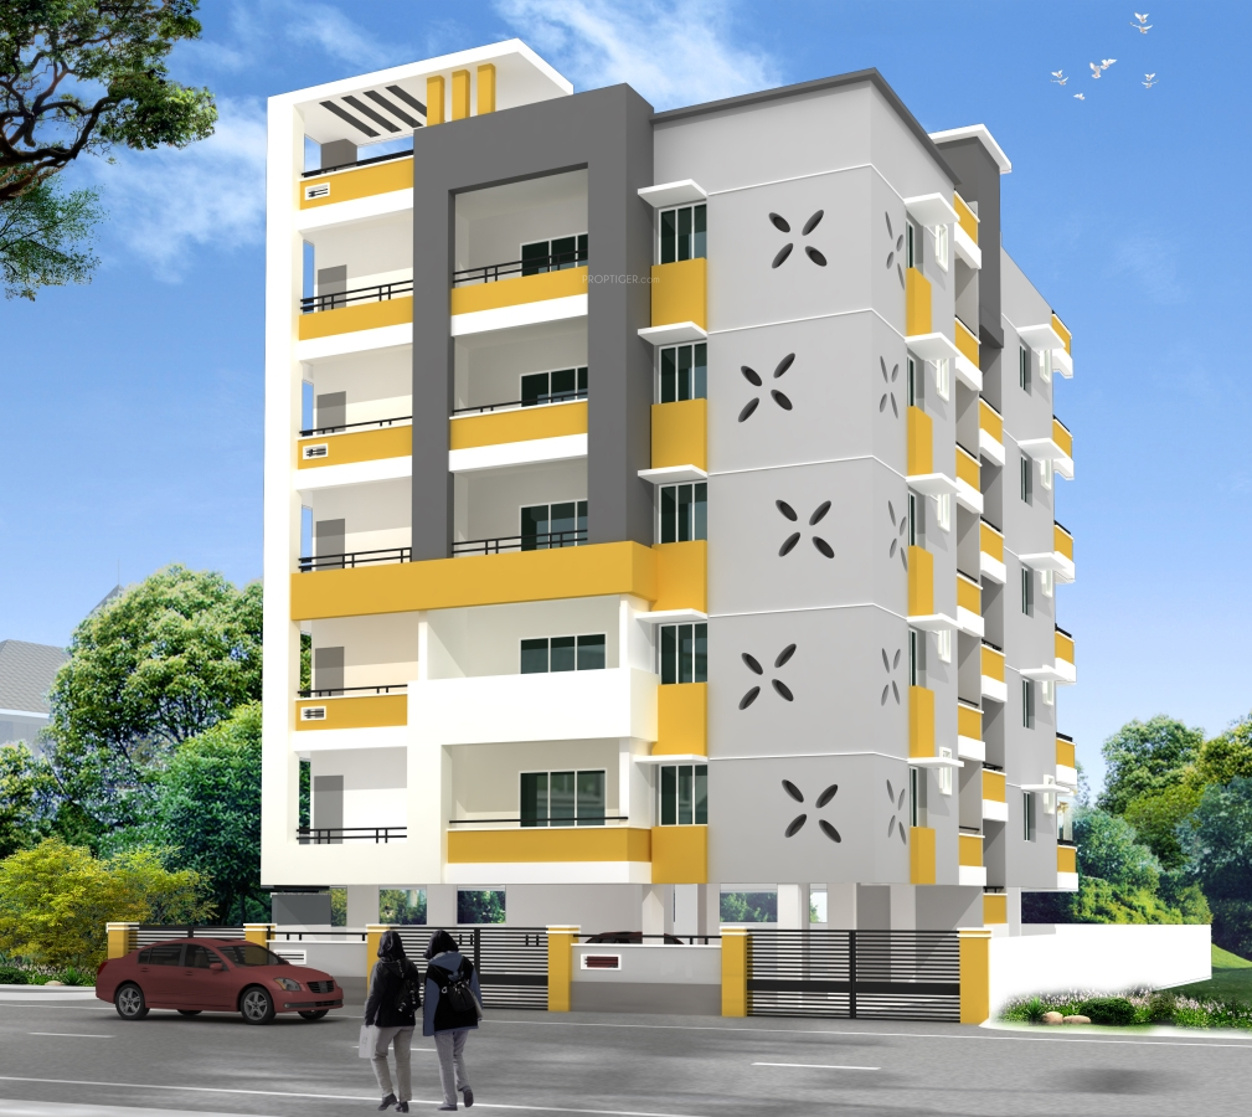 Appletree Apartments: 1200 Sq Ft 2 BHK 2T Apartment For Sale In Hallmark Maple